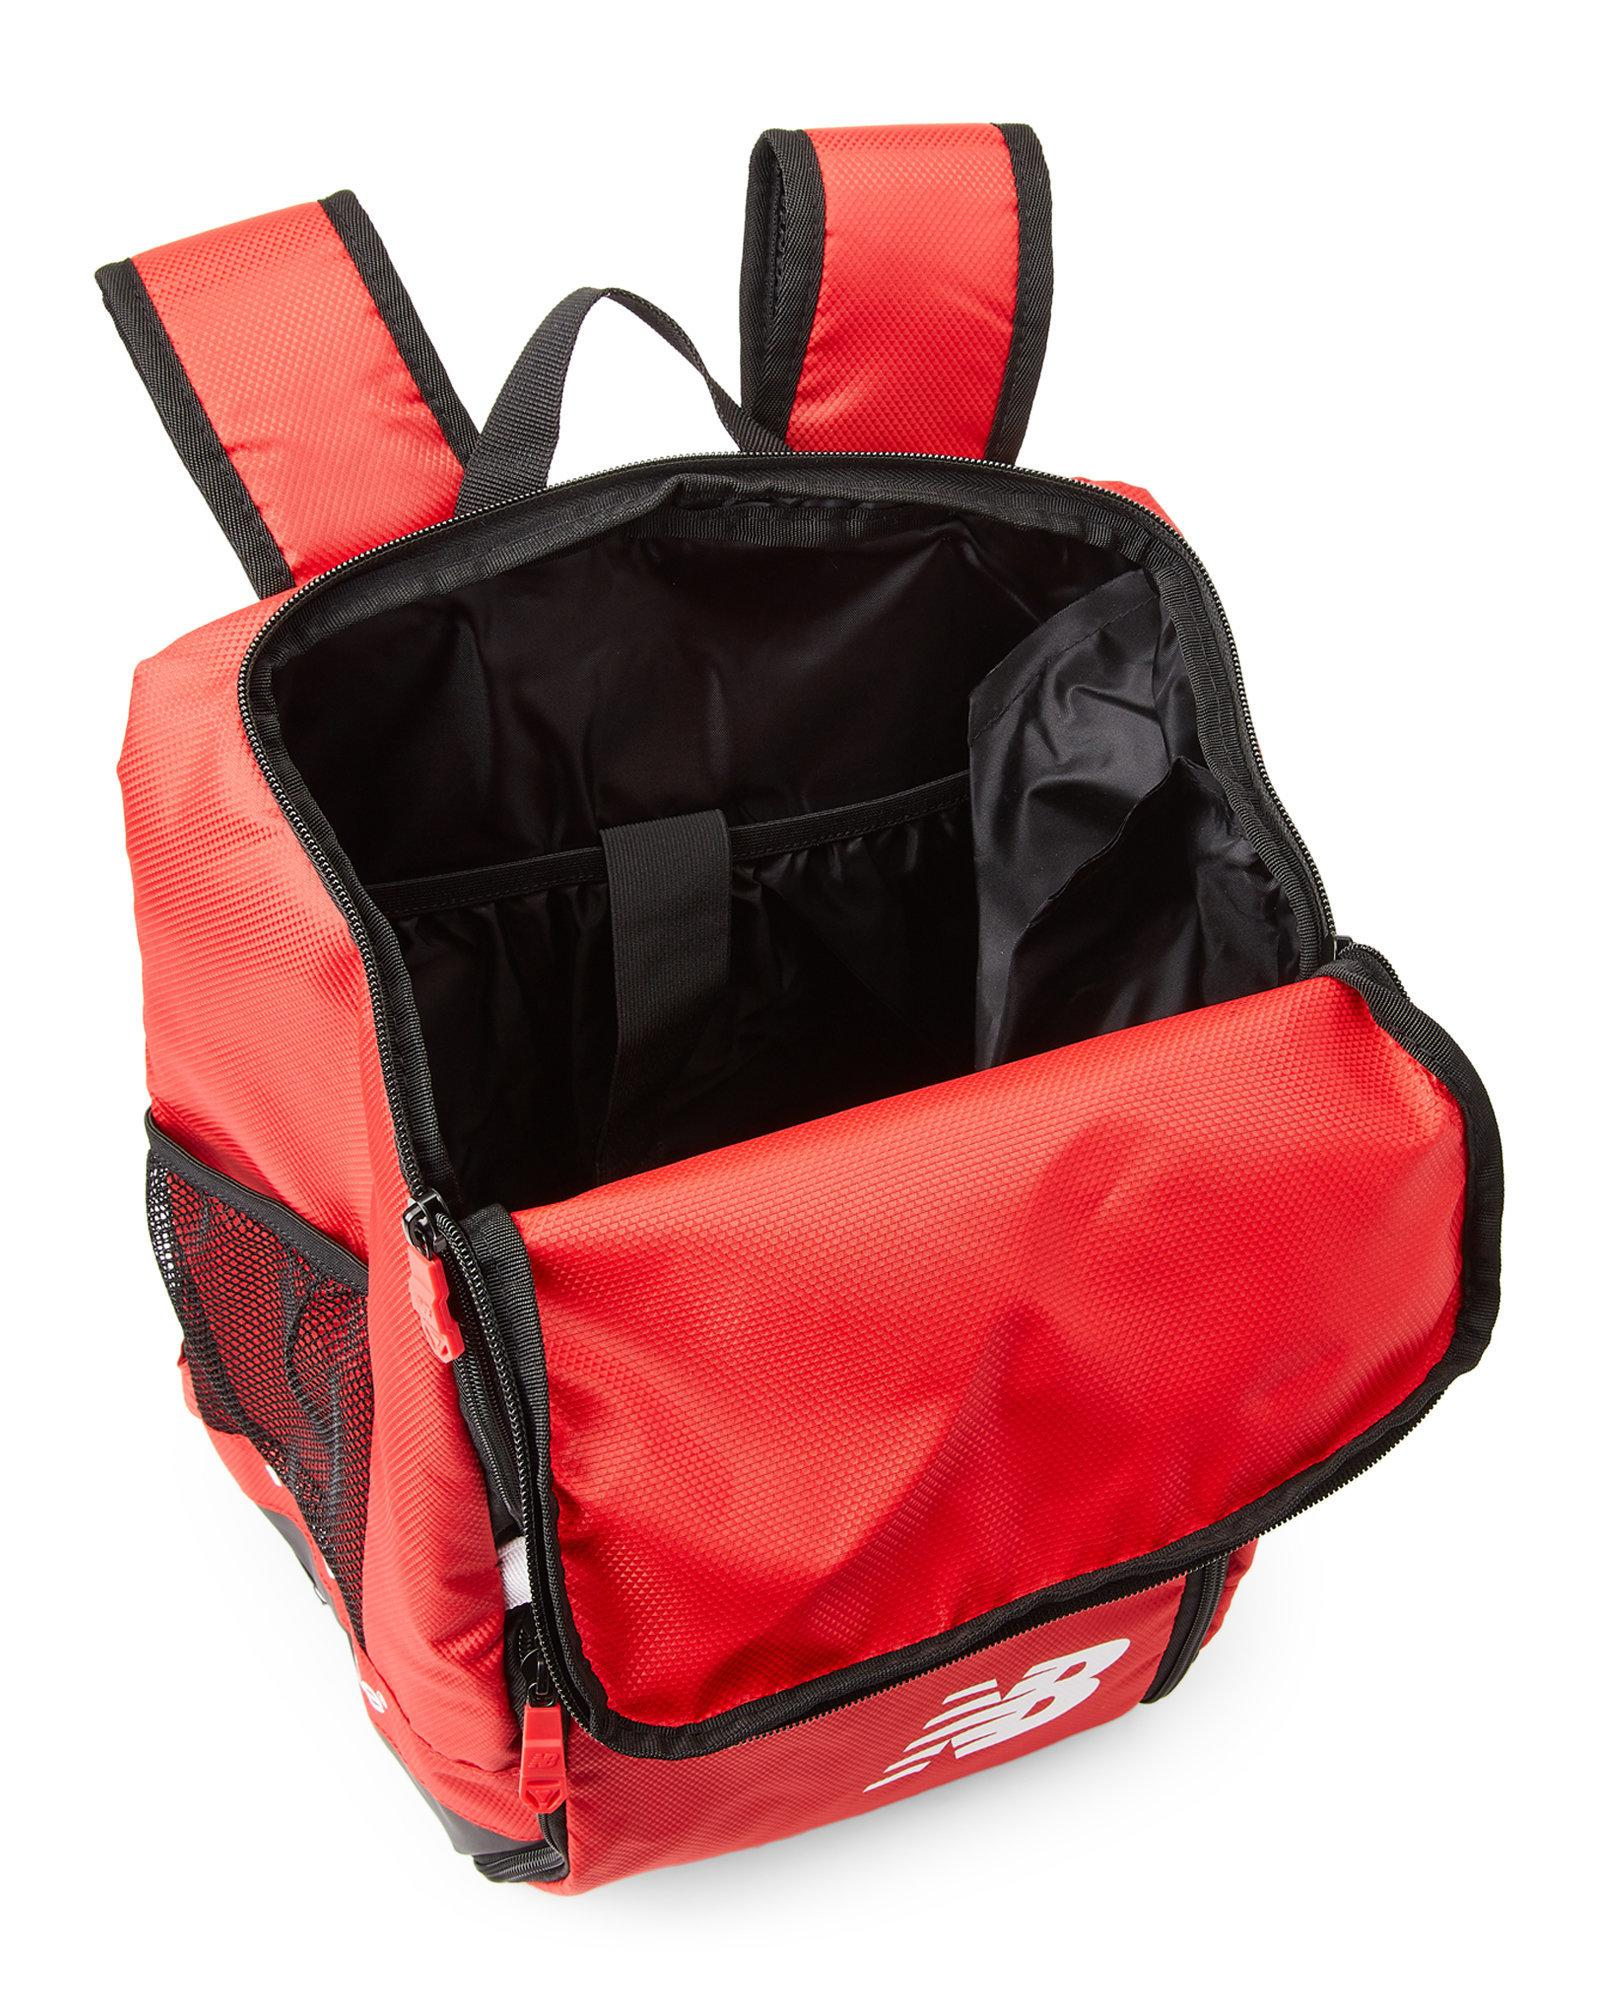 eaff603989 Lyst - New Balance Scarlet Team Ball Backpack in Red